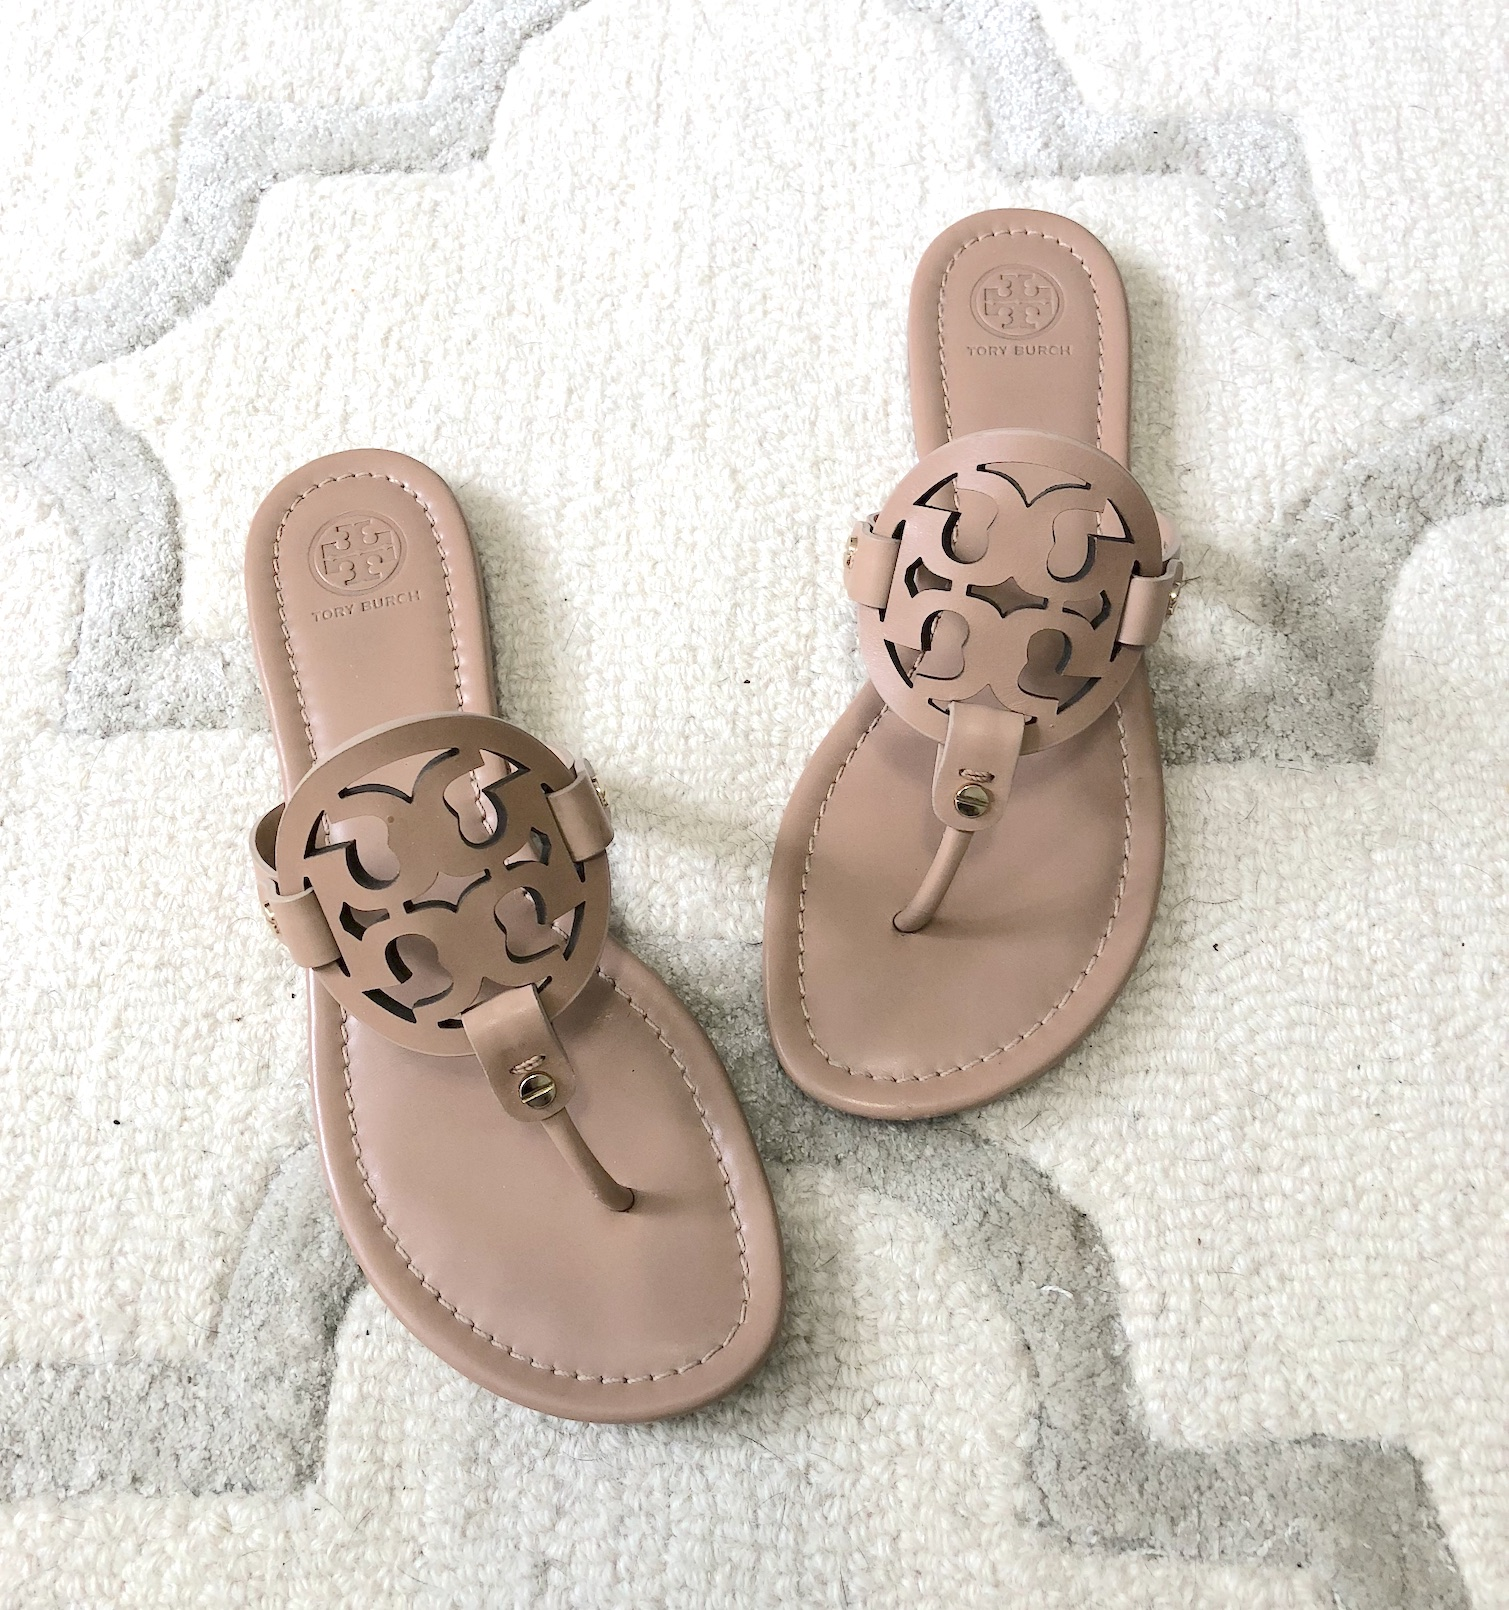 My Favorite Summer Shoes - Tory Burch Miller Sandals